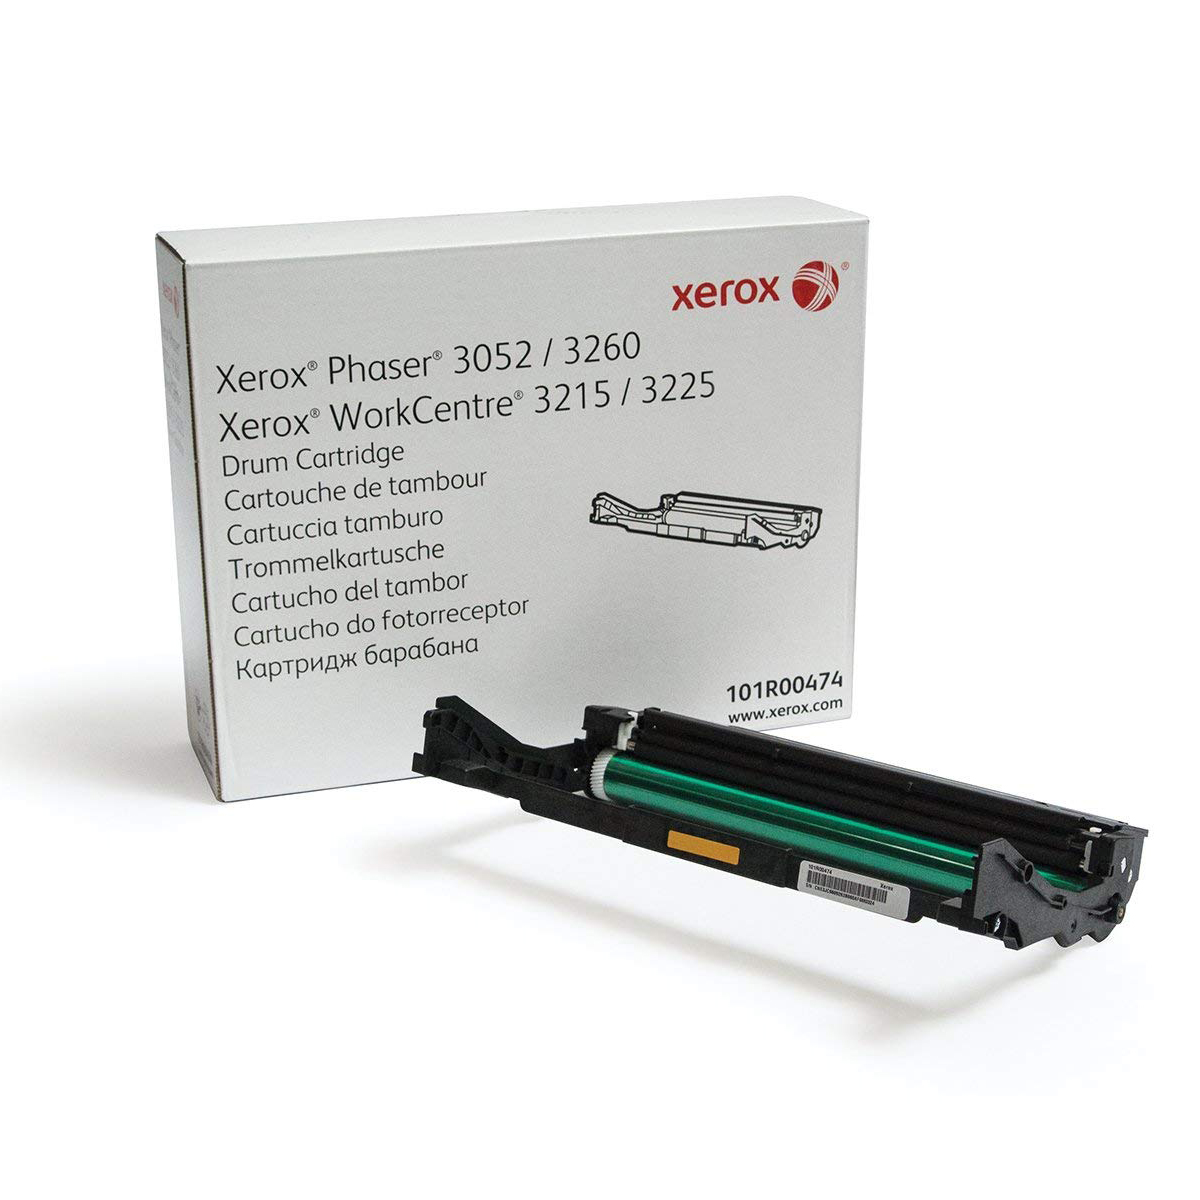 Xerox 101R00474 Drum Cartridge